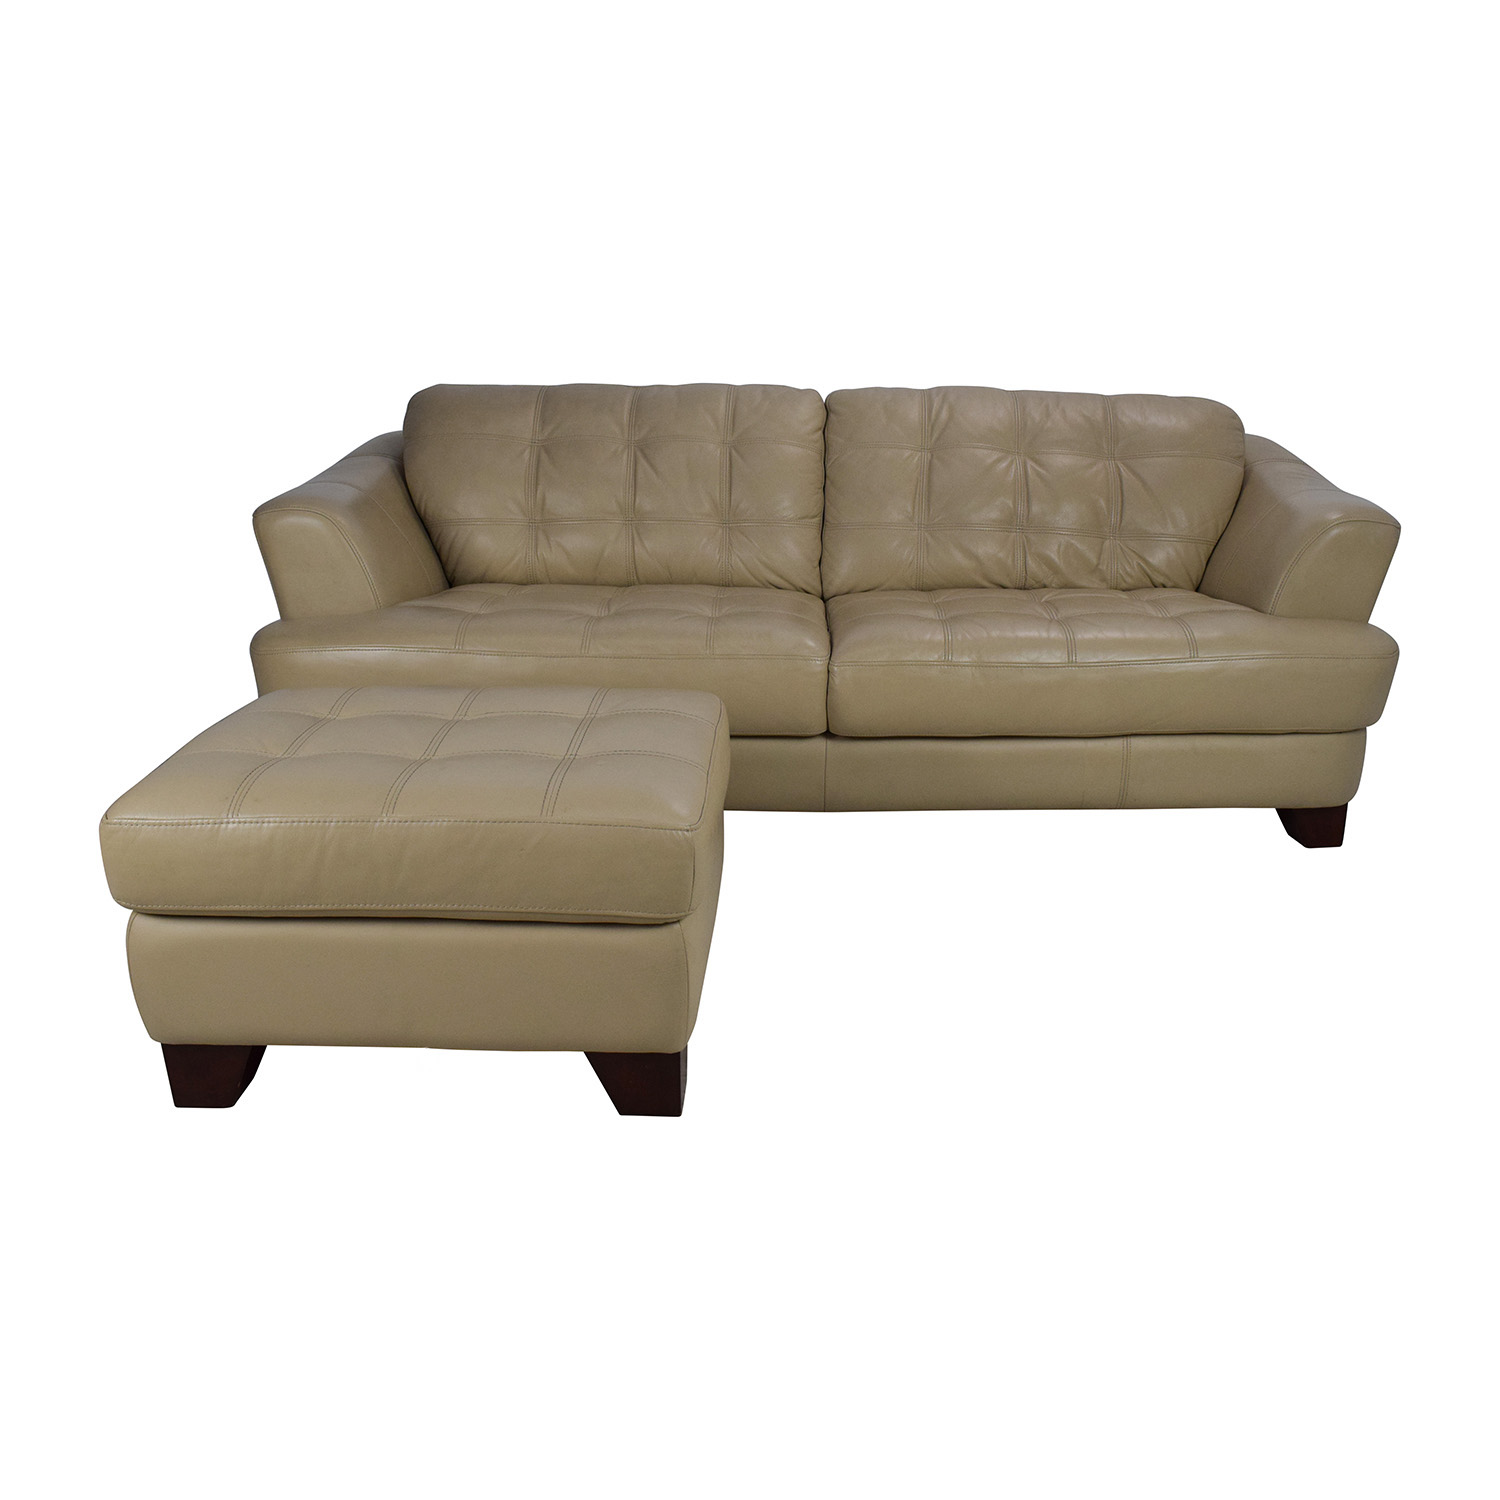 65 Off Bob S Discount Furniture Bob S Furniture Leather Couch